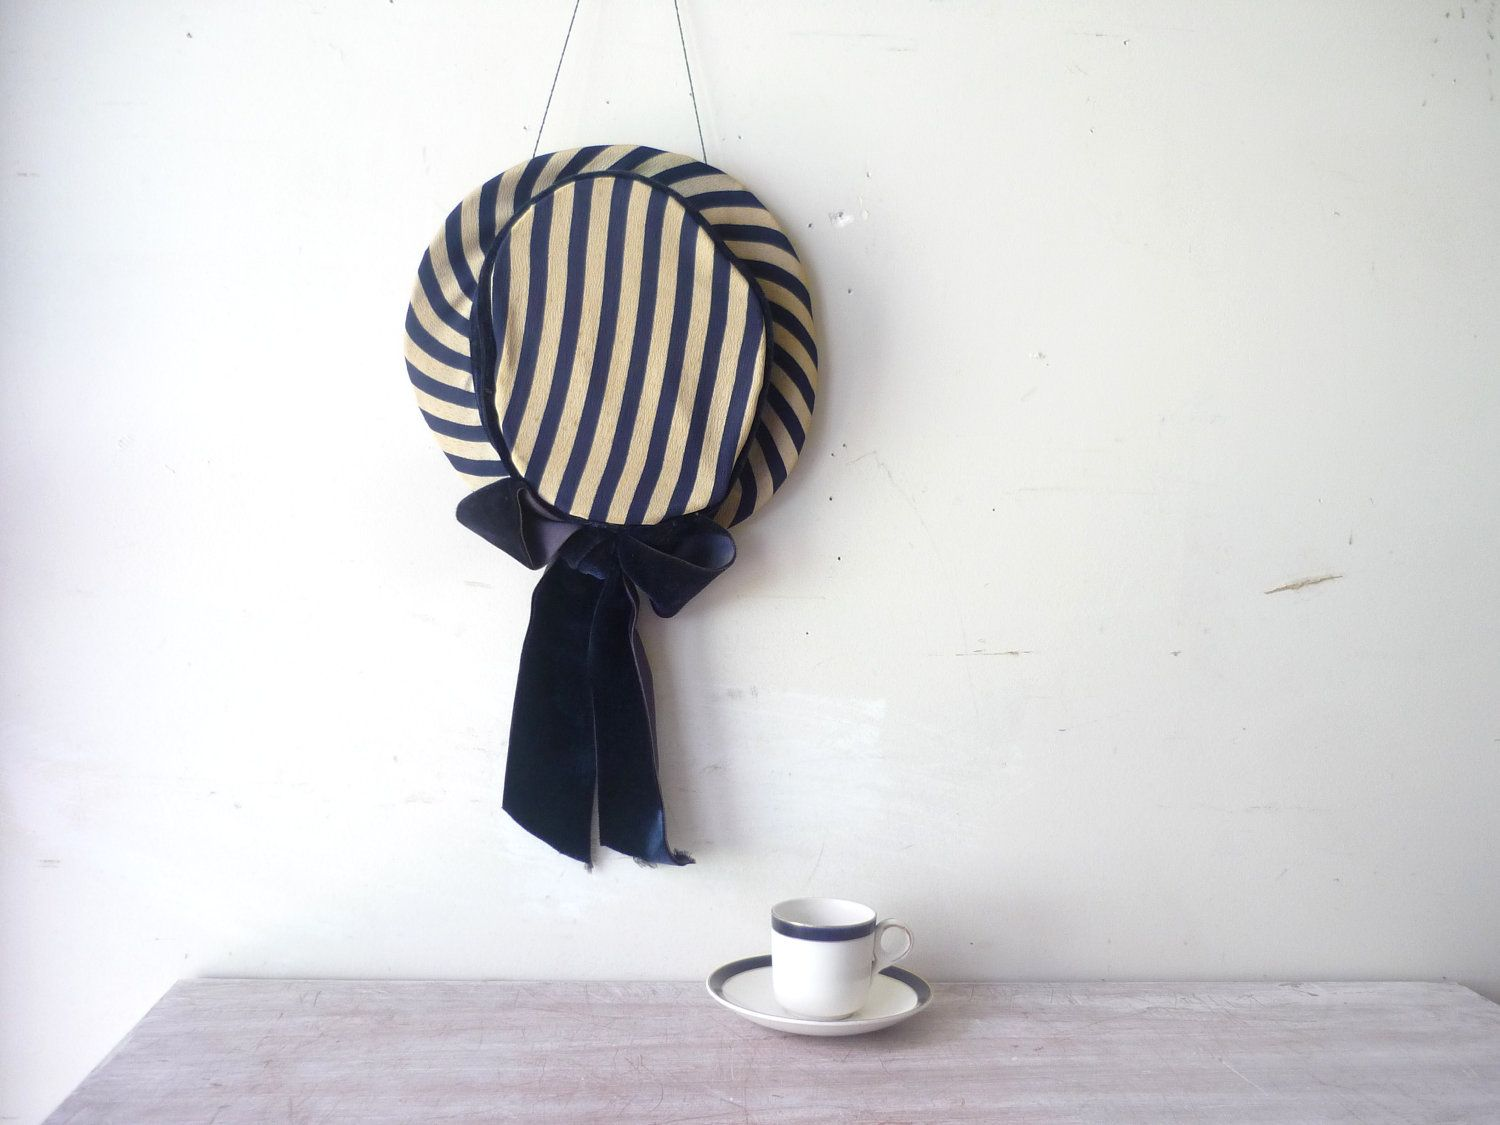 Vintage Navy Blue and Cream Striped Hat with Navy Blue Bow - Millinery Decor. $18.00, via Etsy.